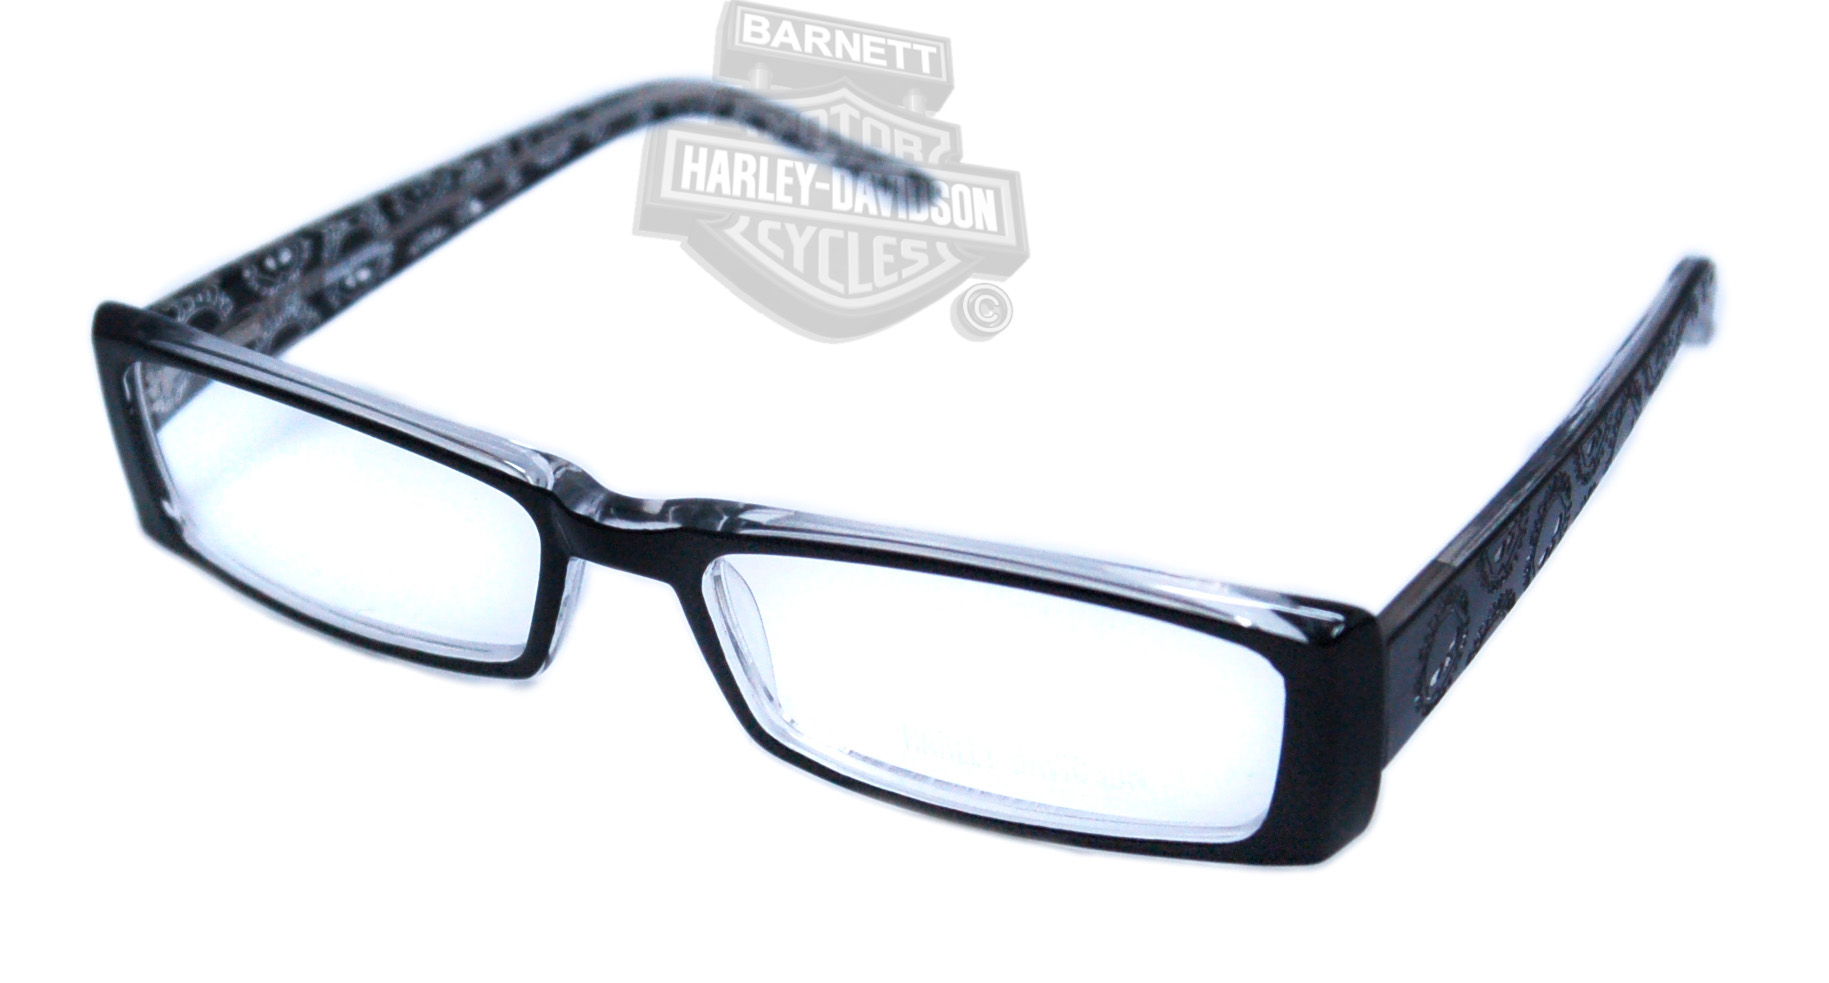 Harley-Davidson Hd3002Blk Reading Glasses